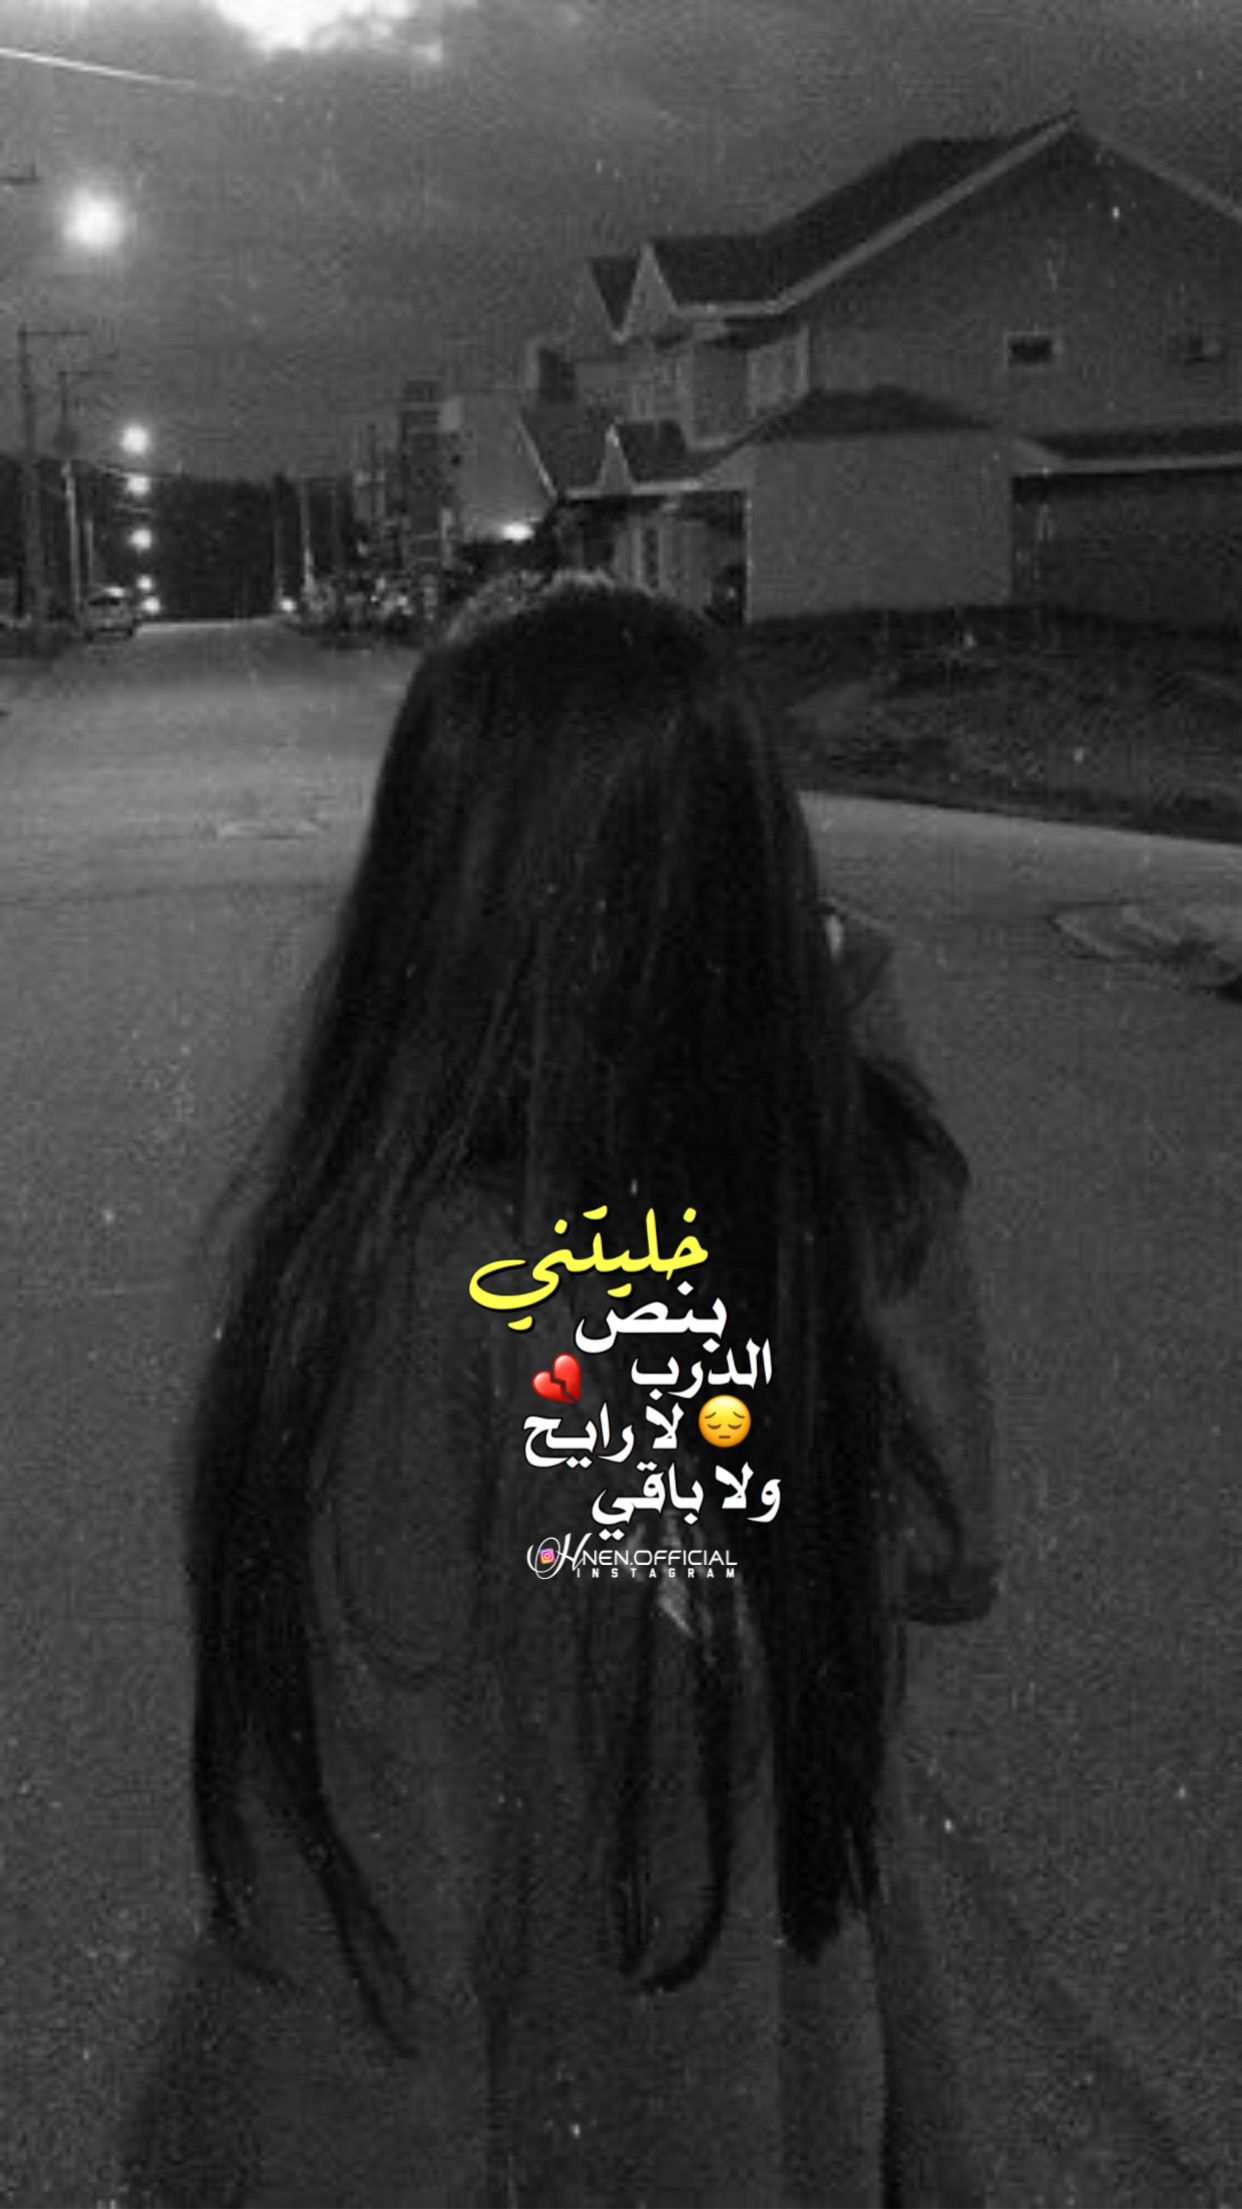 Pin By حنــو On Compatible Funny Quotes For Instagram Photo Ideas Girl Girly Pictures